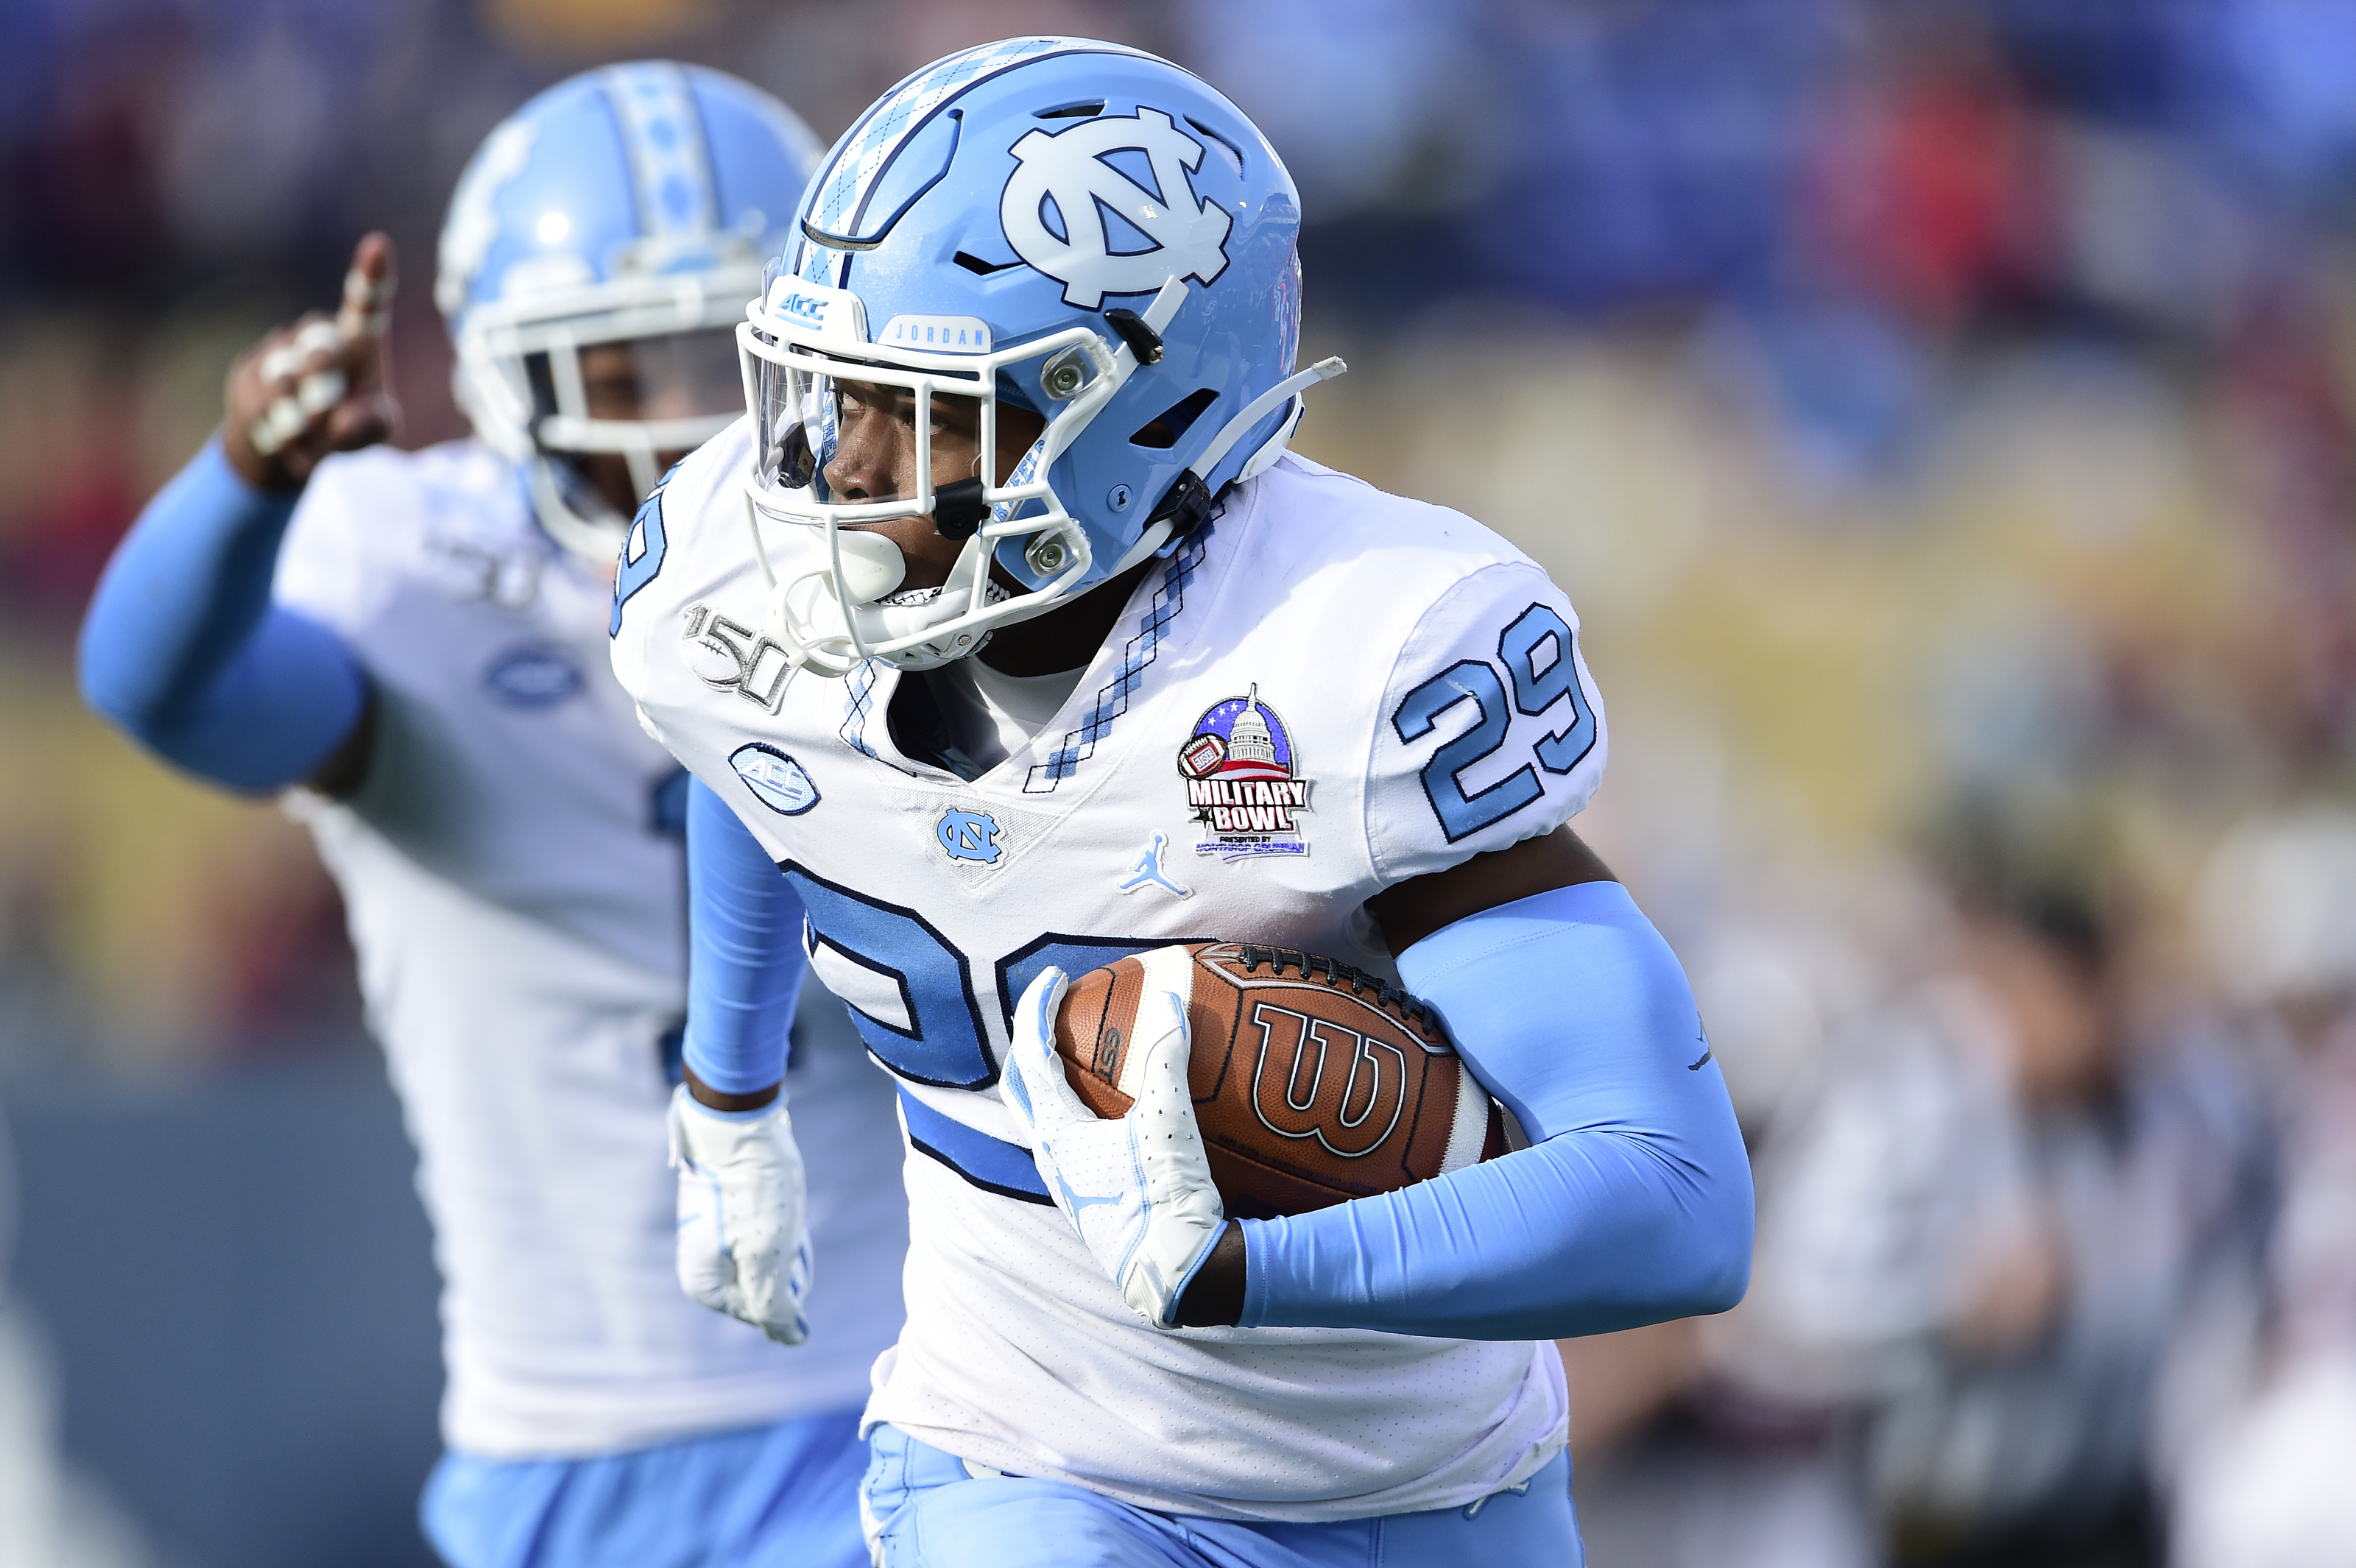 UNC Football: Two Tar Heels named top 5 in ACC per PFF